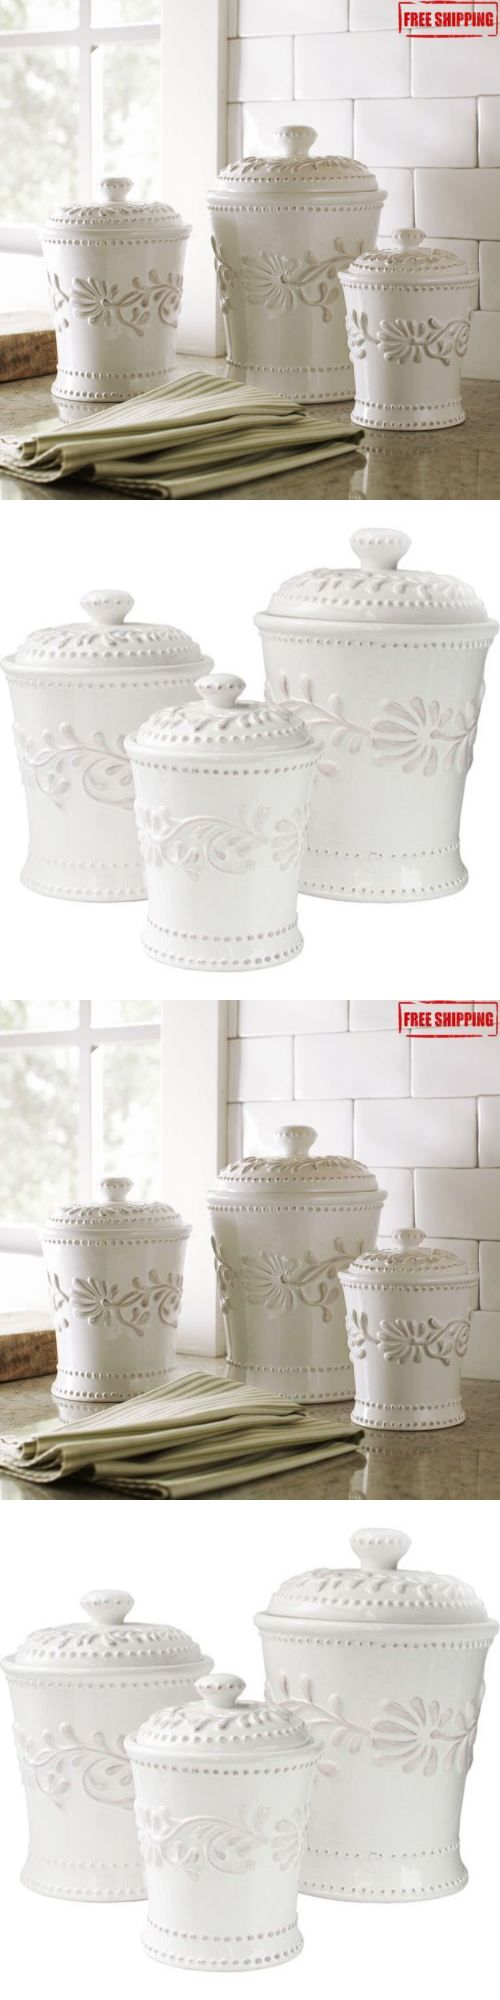 Canisters and Jars 20654: Canister Set Kitchen Storage 3 Piece Jars Sugar Coffee Flour Tea Ceramic Lids -> BUY IT NOW ONLY: $69.41 on eBay!